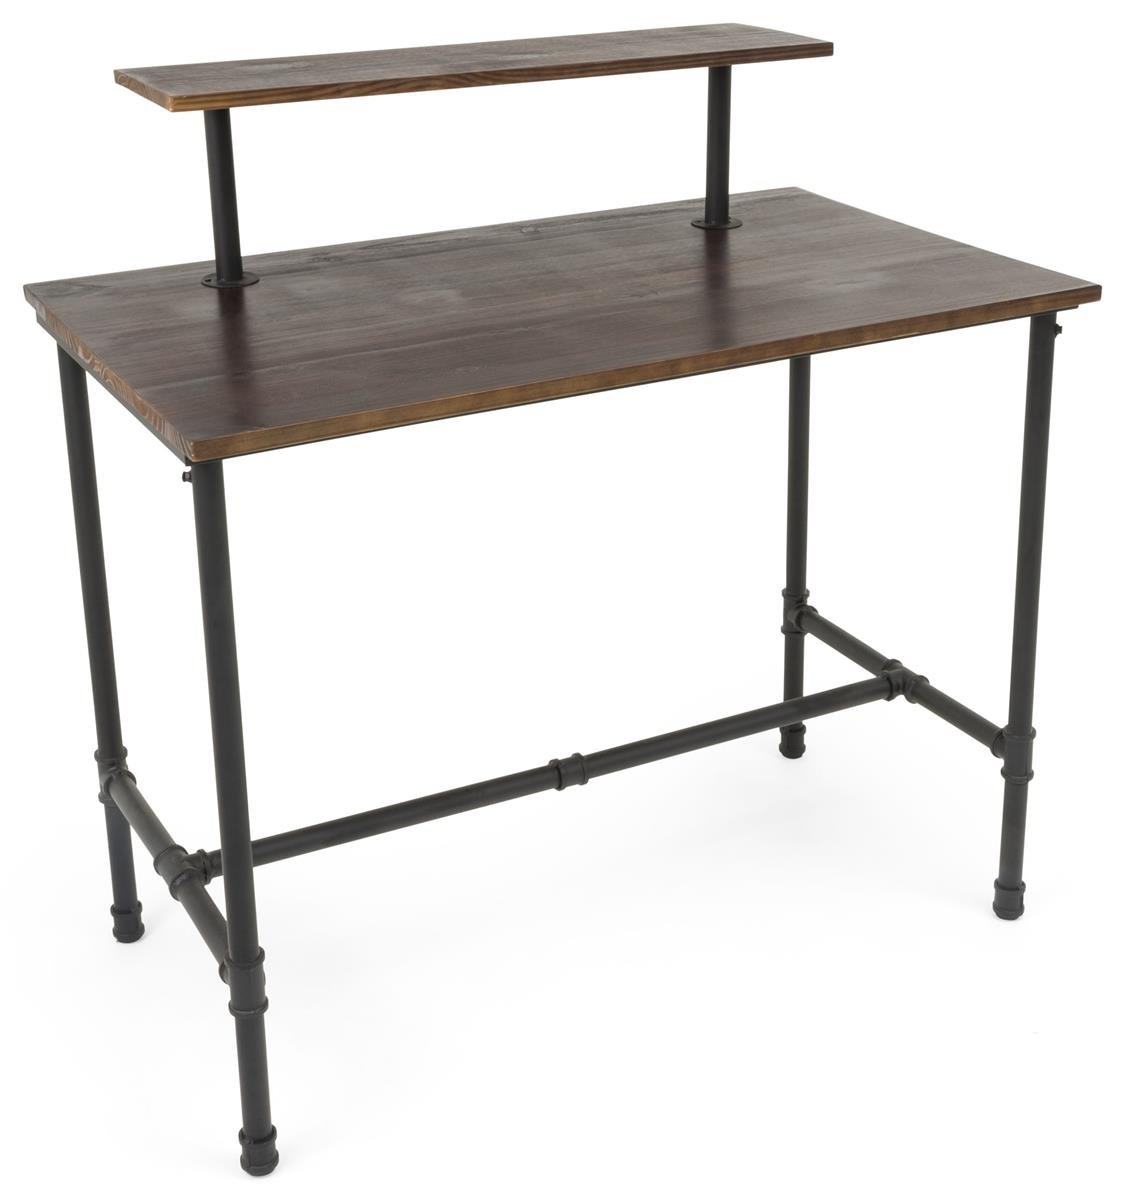 Displays2go, Pipe Display Table with Removable Shelf, Metal and Pine Wood Construction – Natural Top, Black Hardware Legs (PPLNNSTLGB)